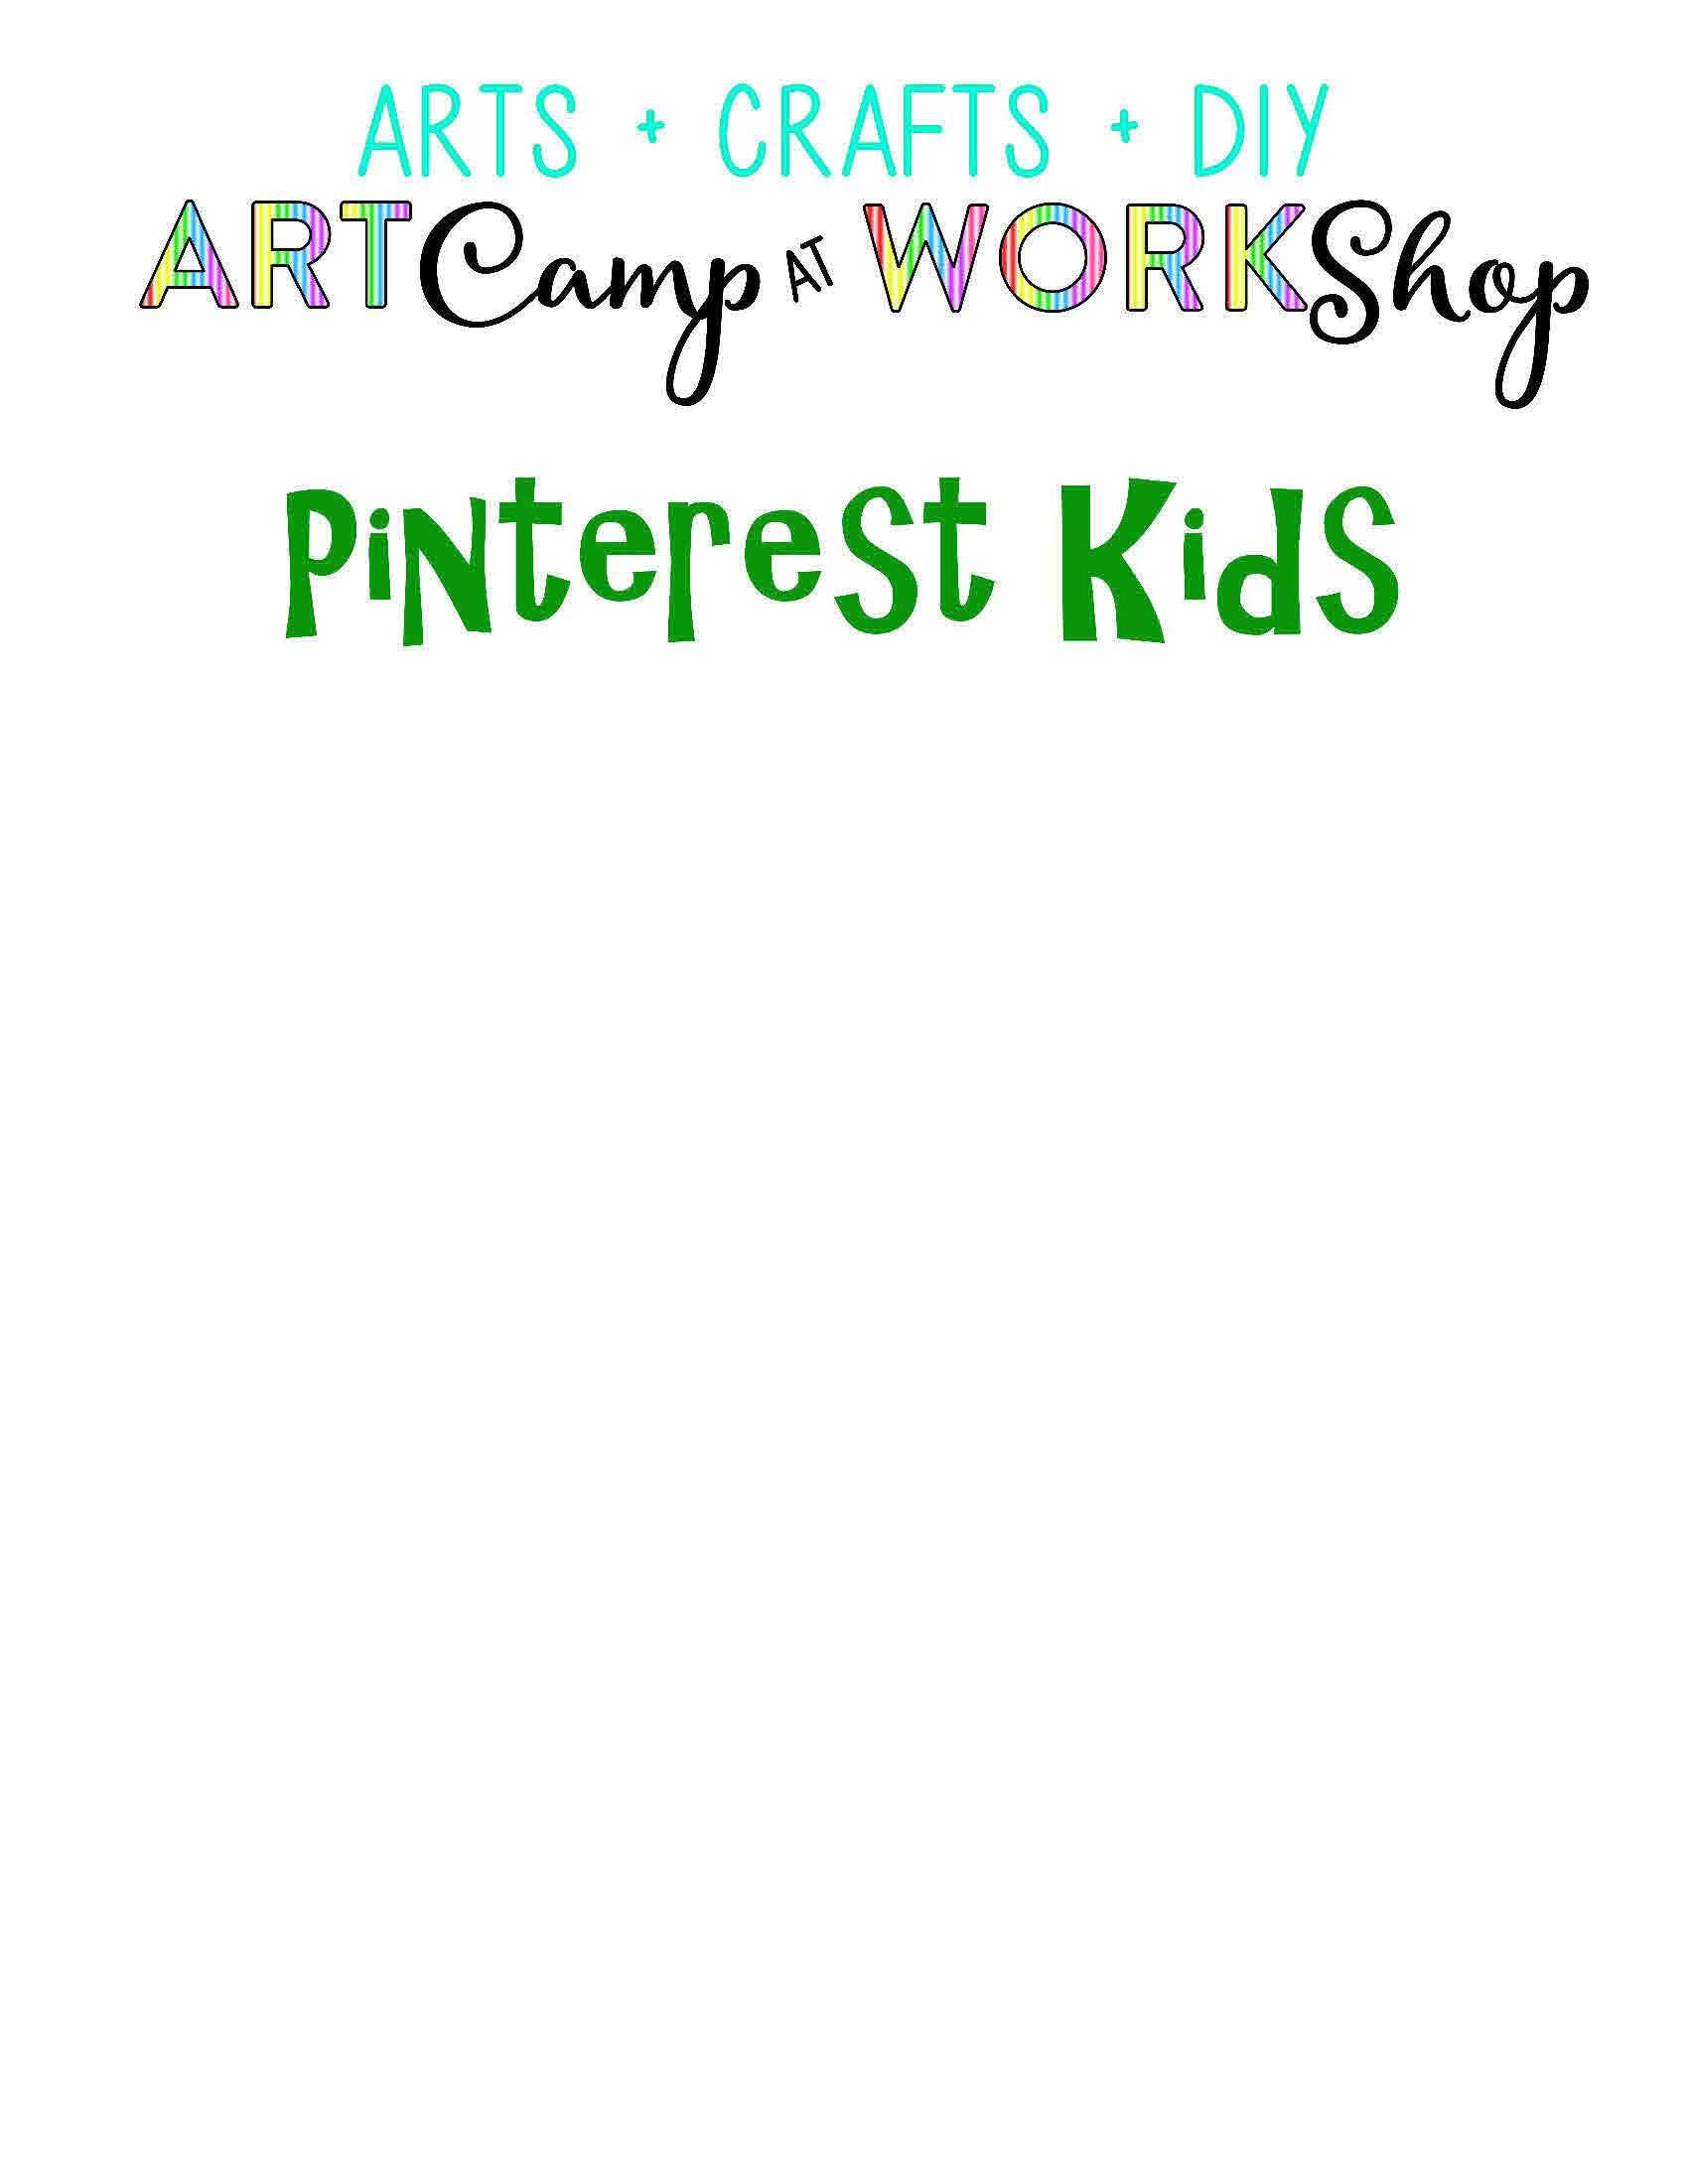 Pinterest Kids Summer Camp At Workshop Shelby Shelby